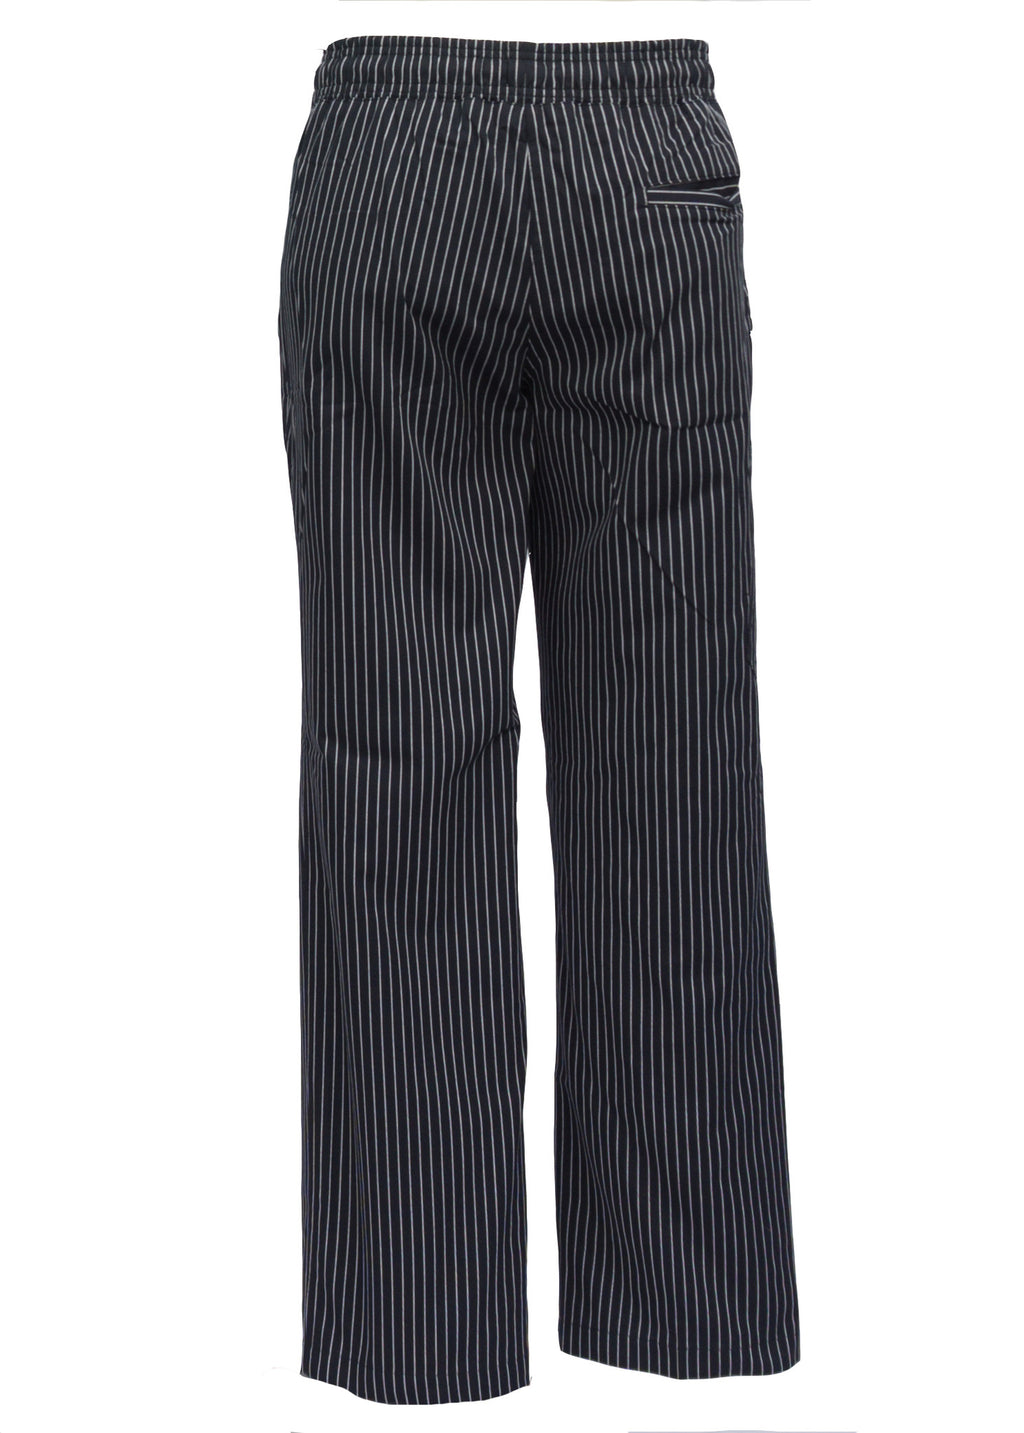 Small Stripes Chef Pants - Green Chef Wear